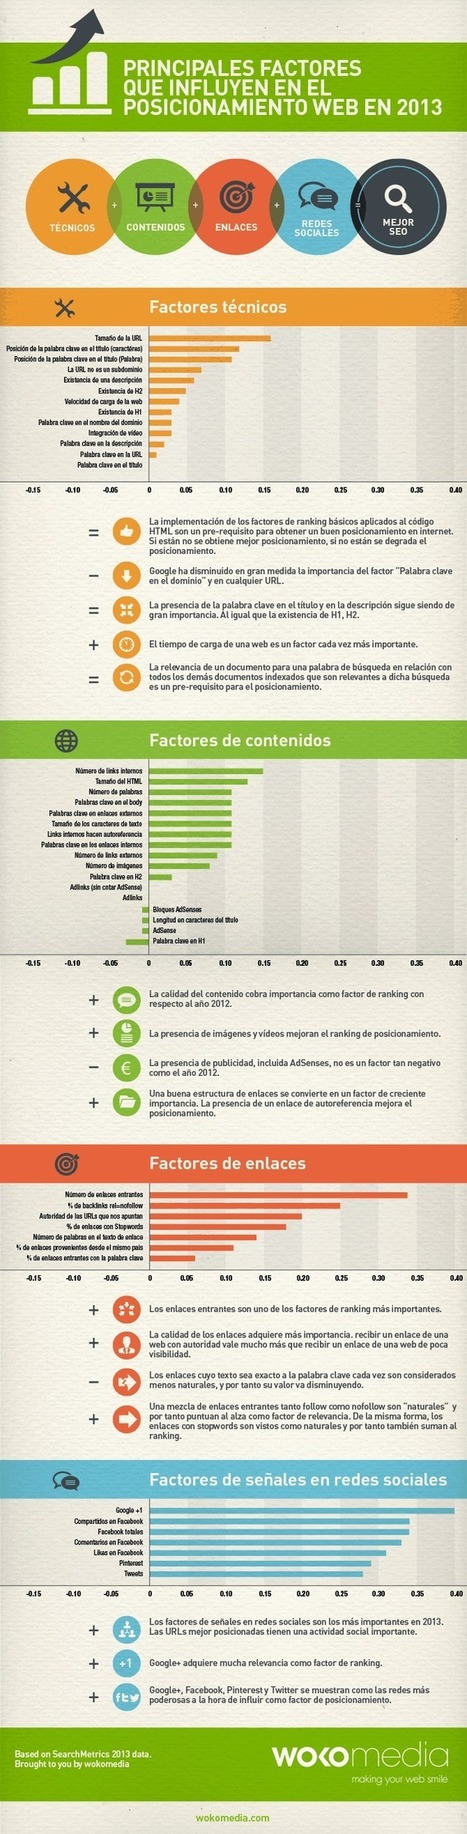 Factores que más influyen en el posicionamiento web (2013) #infografia #infographic #seo | Managing Technology and Talent for Learning & Innovation | Scoop.it